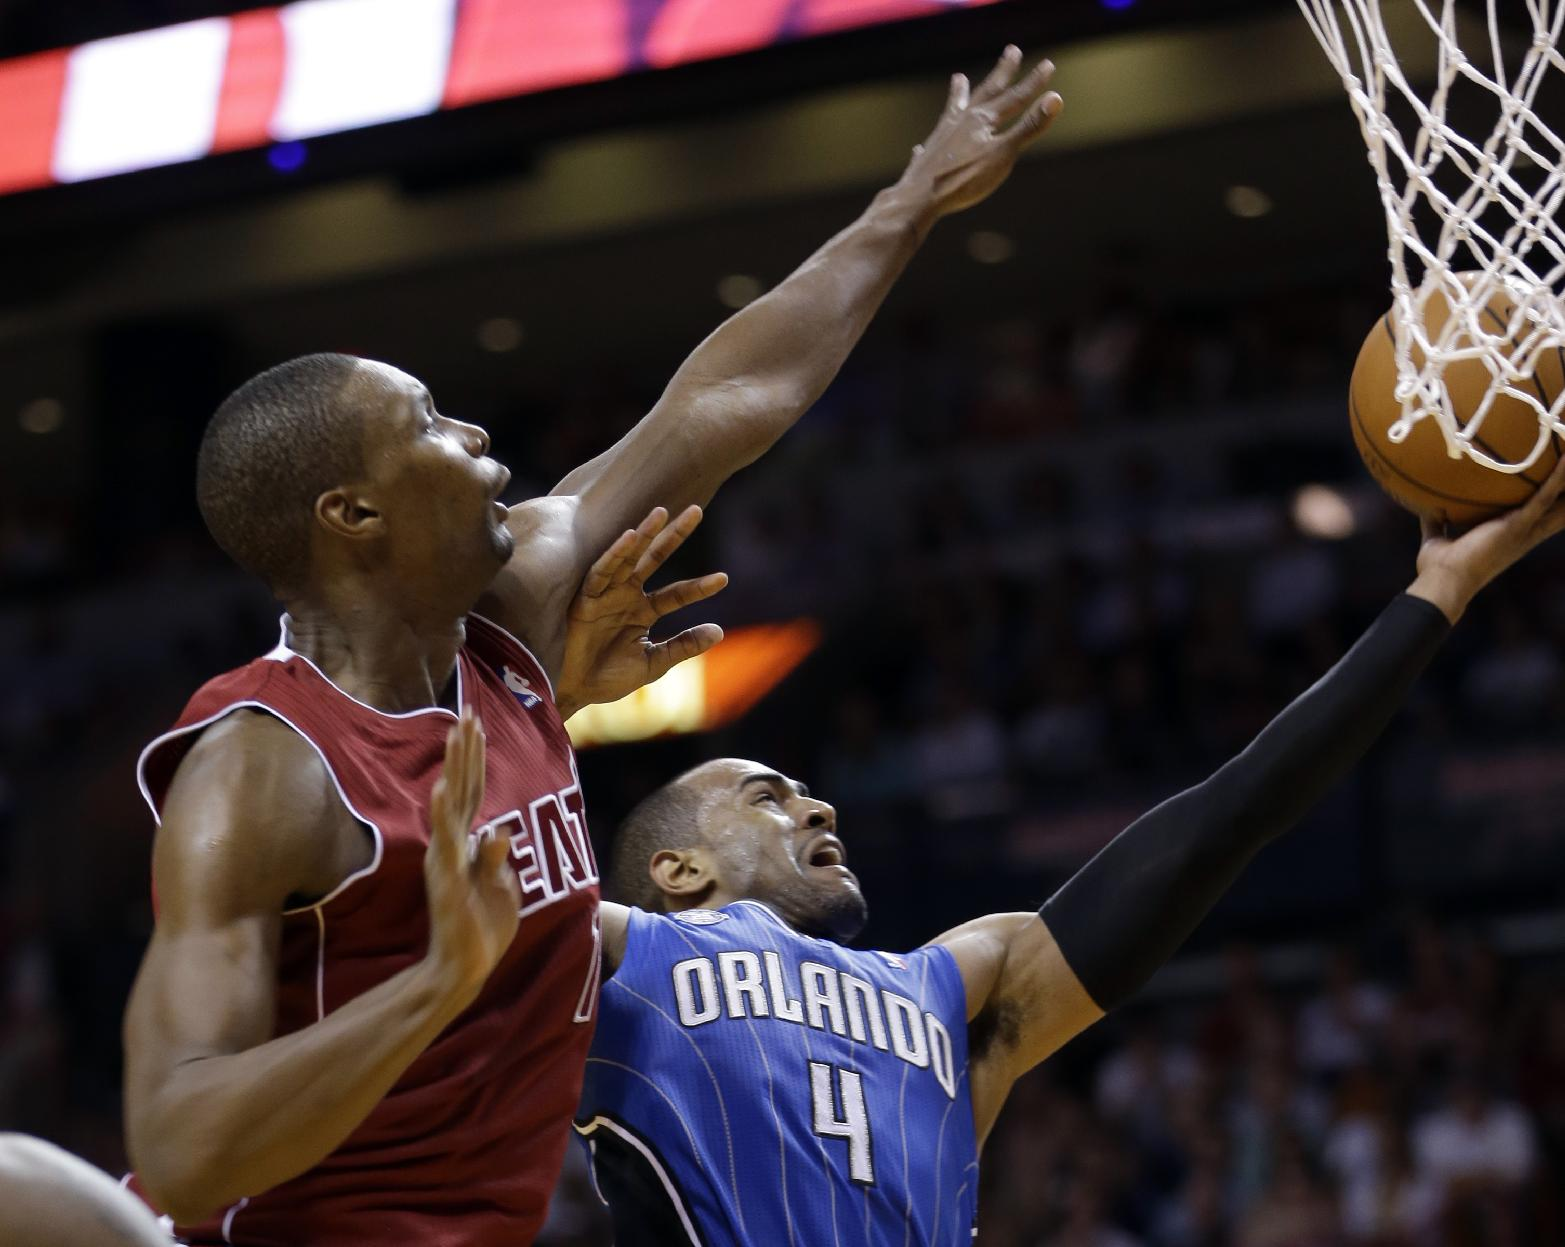 Orlando Magic shooting guard Arron Afflalo (4) goes up to the basket against Miami Heat center Chris Bosh (1) in the fourth quarter of an NBA basketball game, Saturday, Nov. 23, 2013, in Miami. The Heat won 101-99